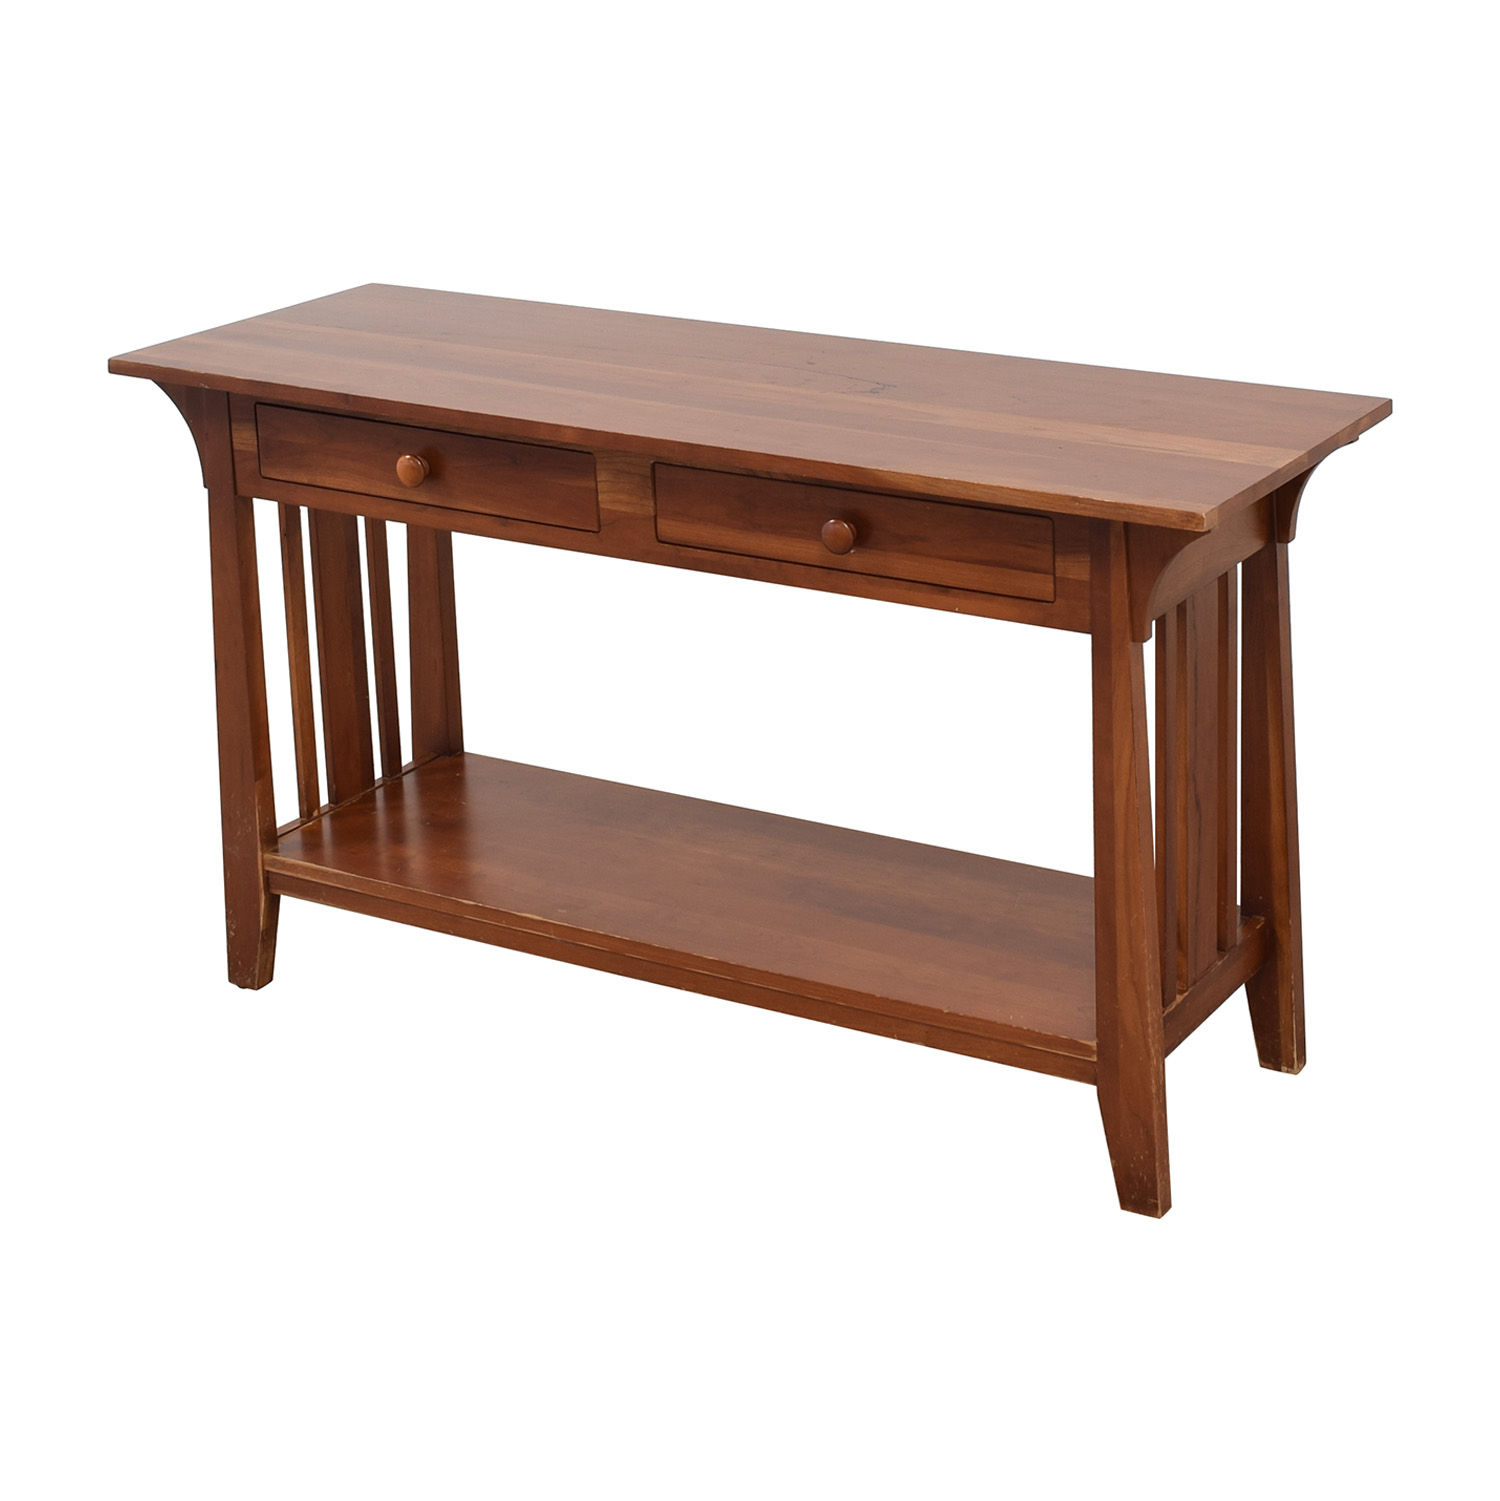 buy Ethan Allen Console with Drawers Ethan Allen Storage